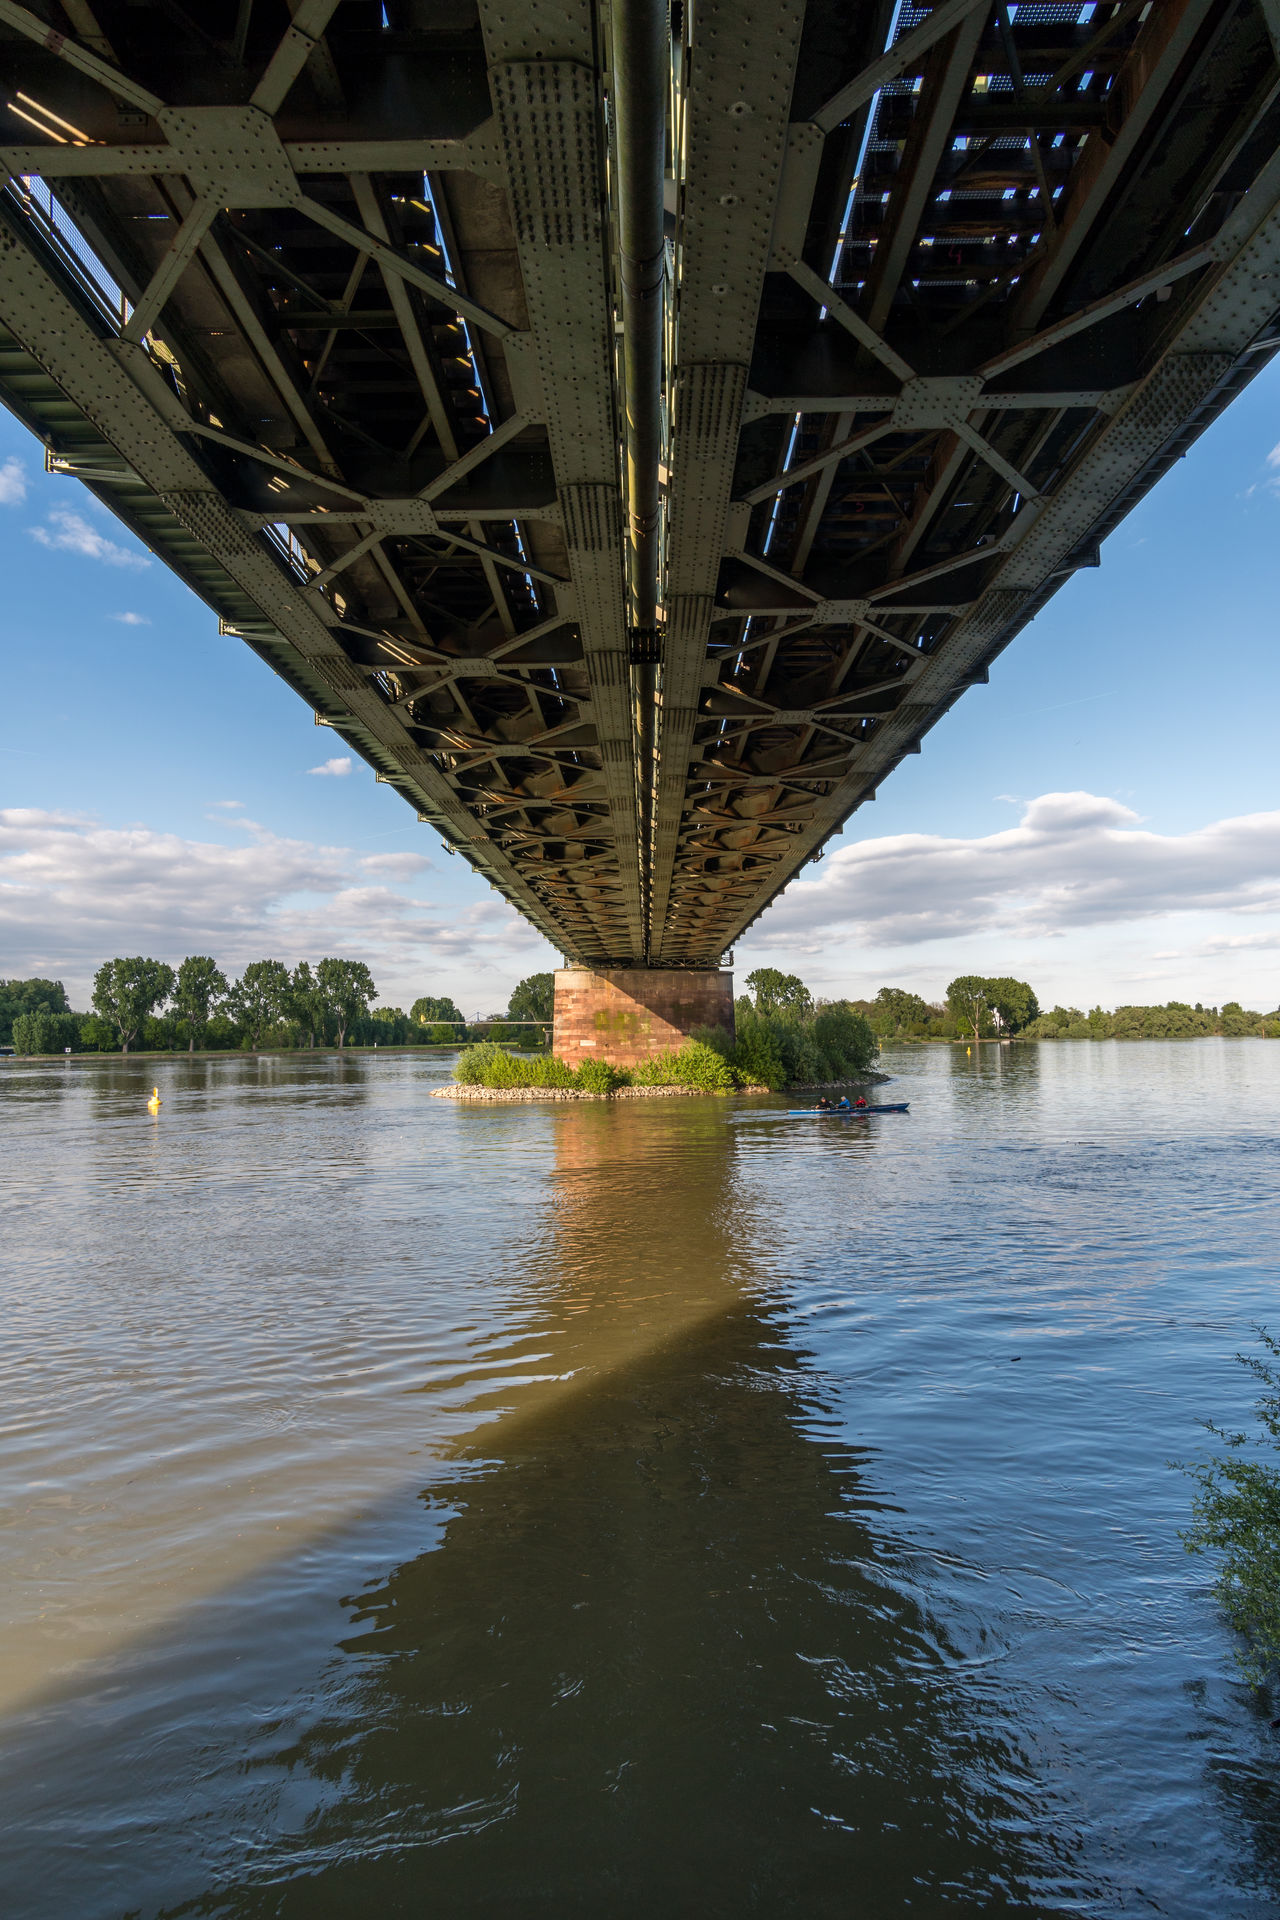 Architecture Below Bridge Bridge - Man Made Structure Built Structure Chain Bridge Connection Day Engineering Nature No People Outdoors River Sky Transportation Tree Under Underneath Walimex 12mm Water Waterfront